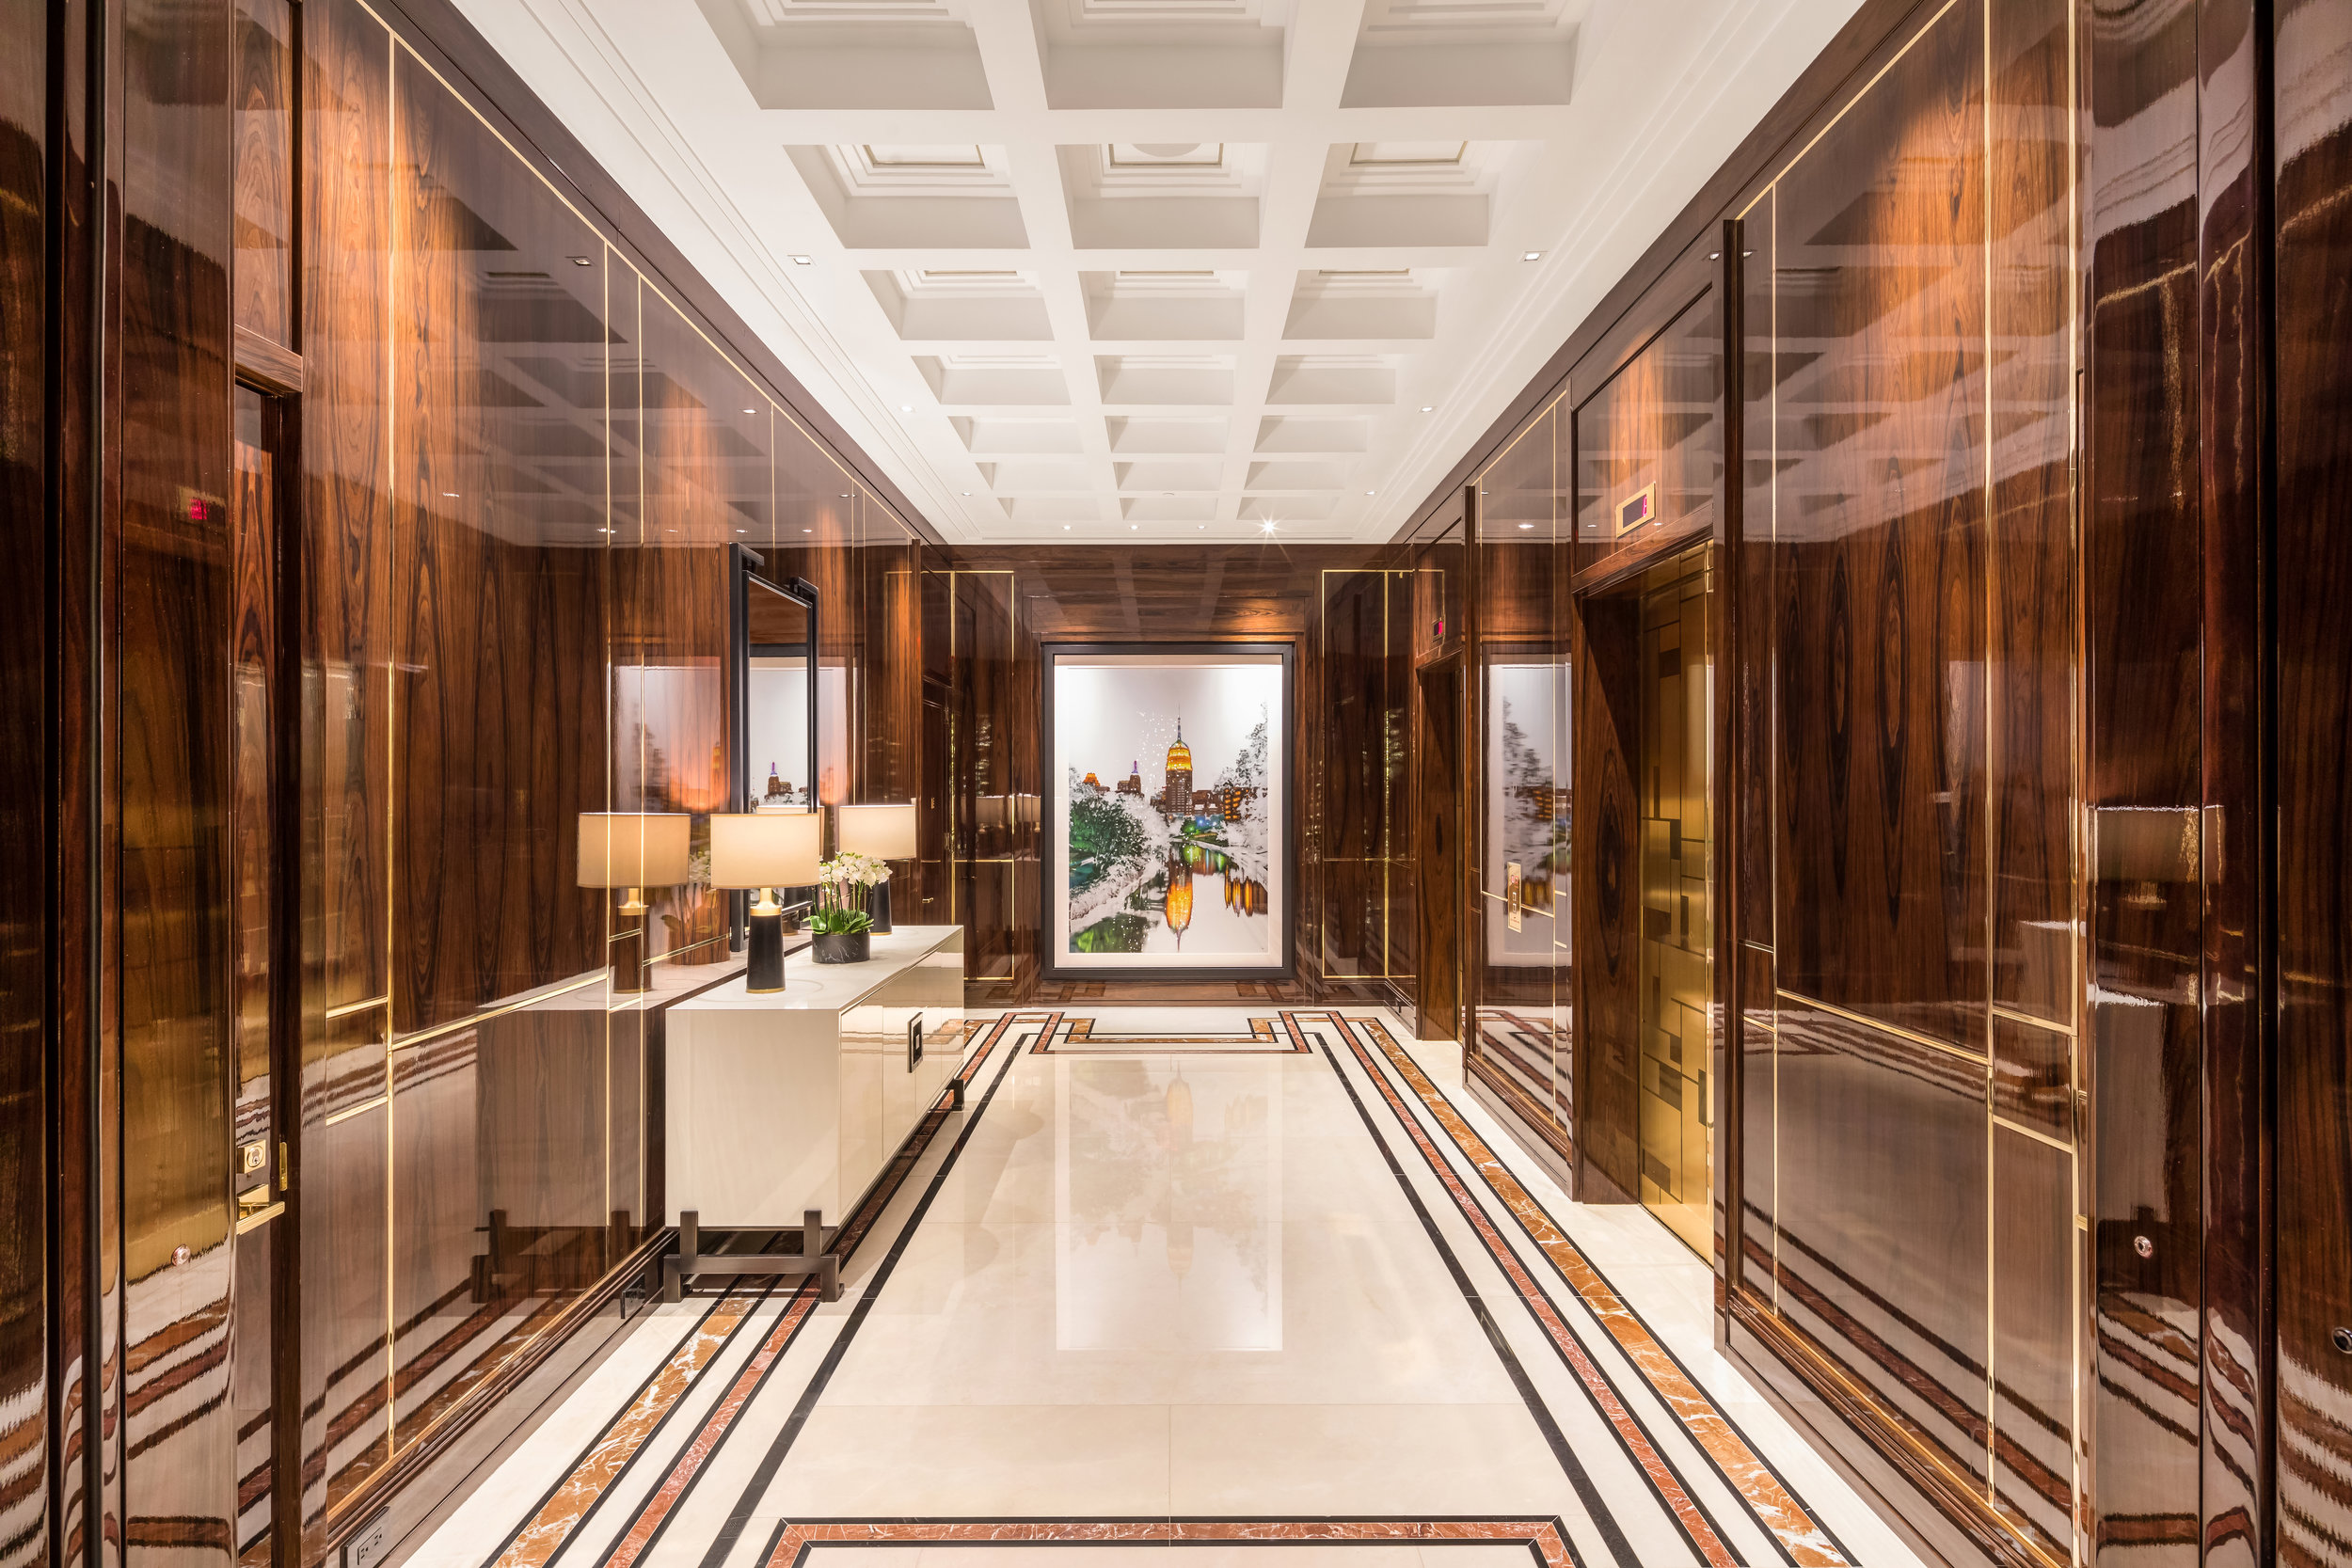 Extell Development Reveals Art Deco Inspired Champalimaud-Designed Amenities At The Kent